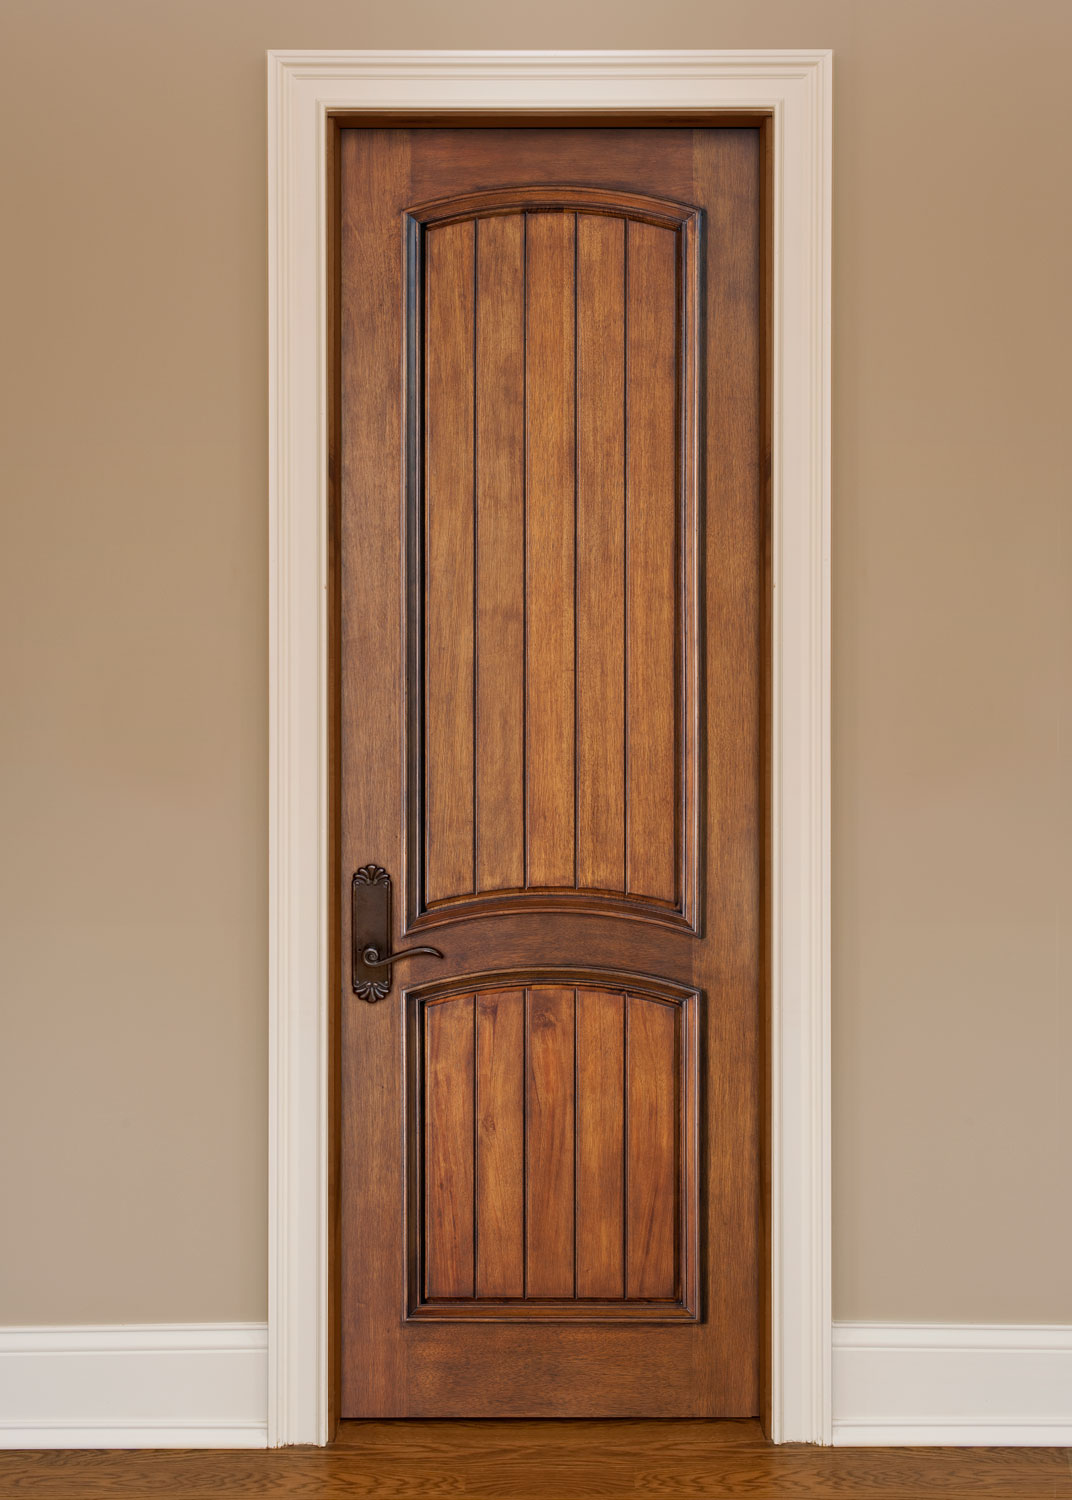 How to purchase interior solid wood doors